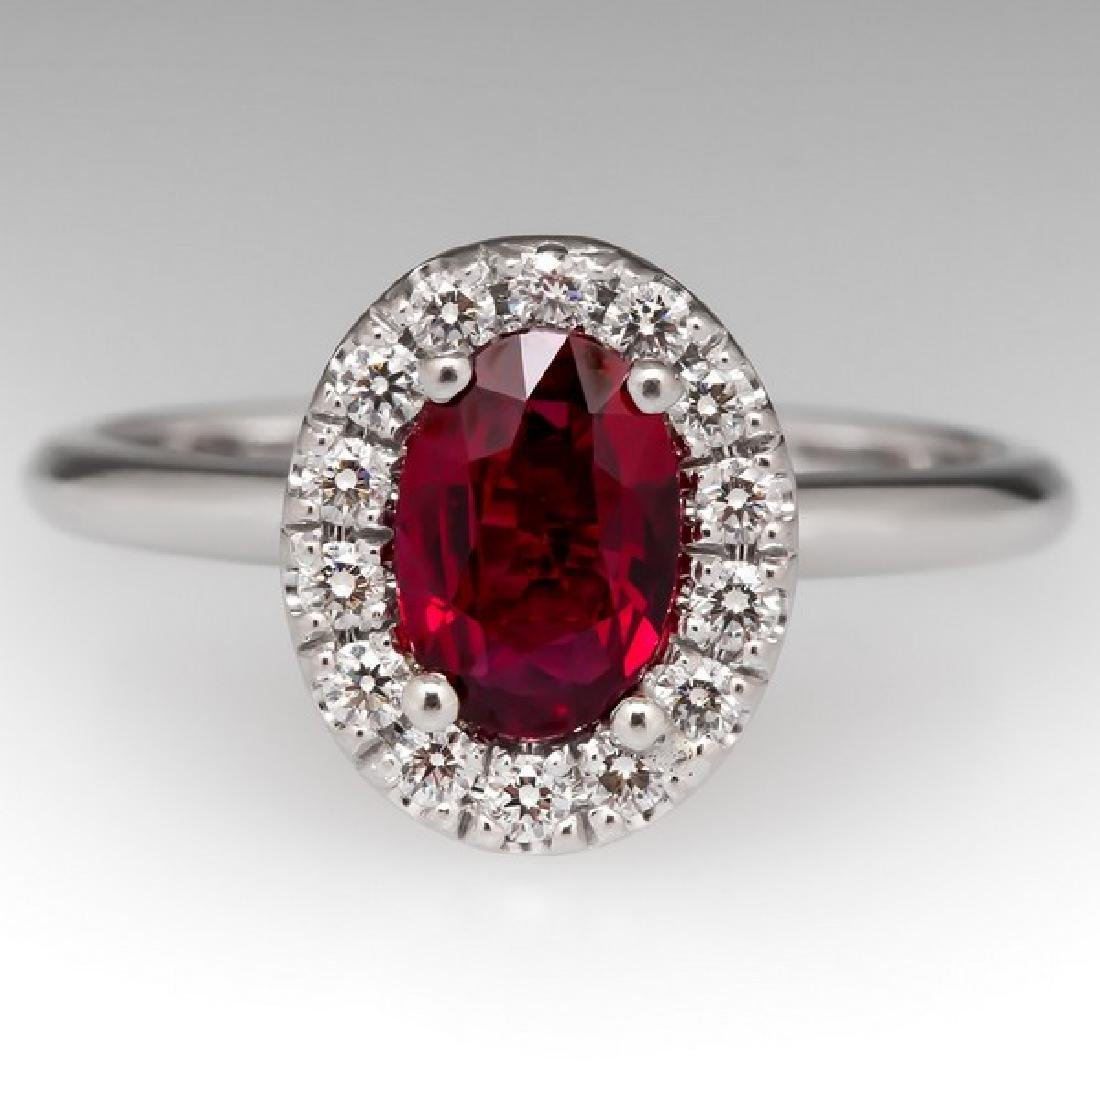 CERTIFIED 18K GOLD NATURAL RUBY & DIAMOND HALO RING